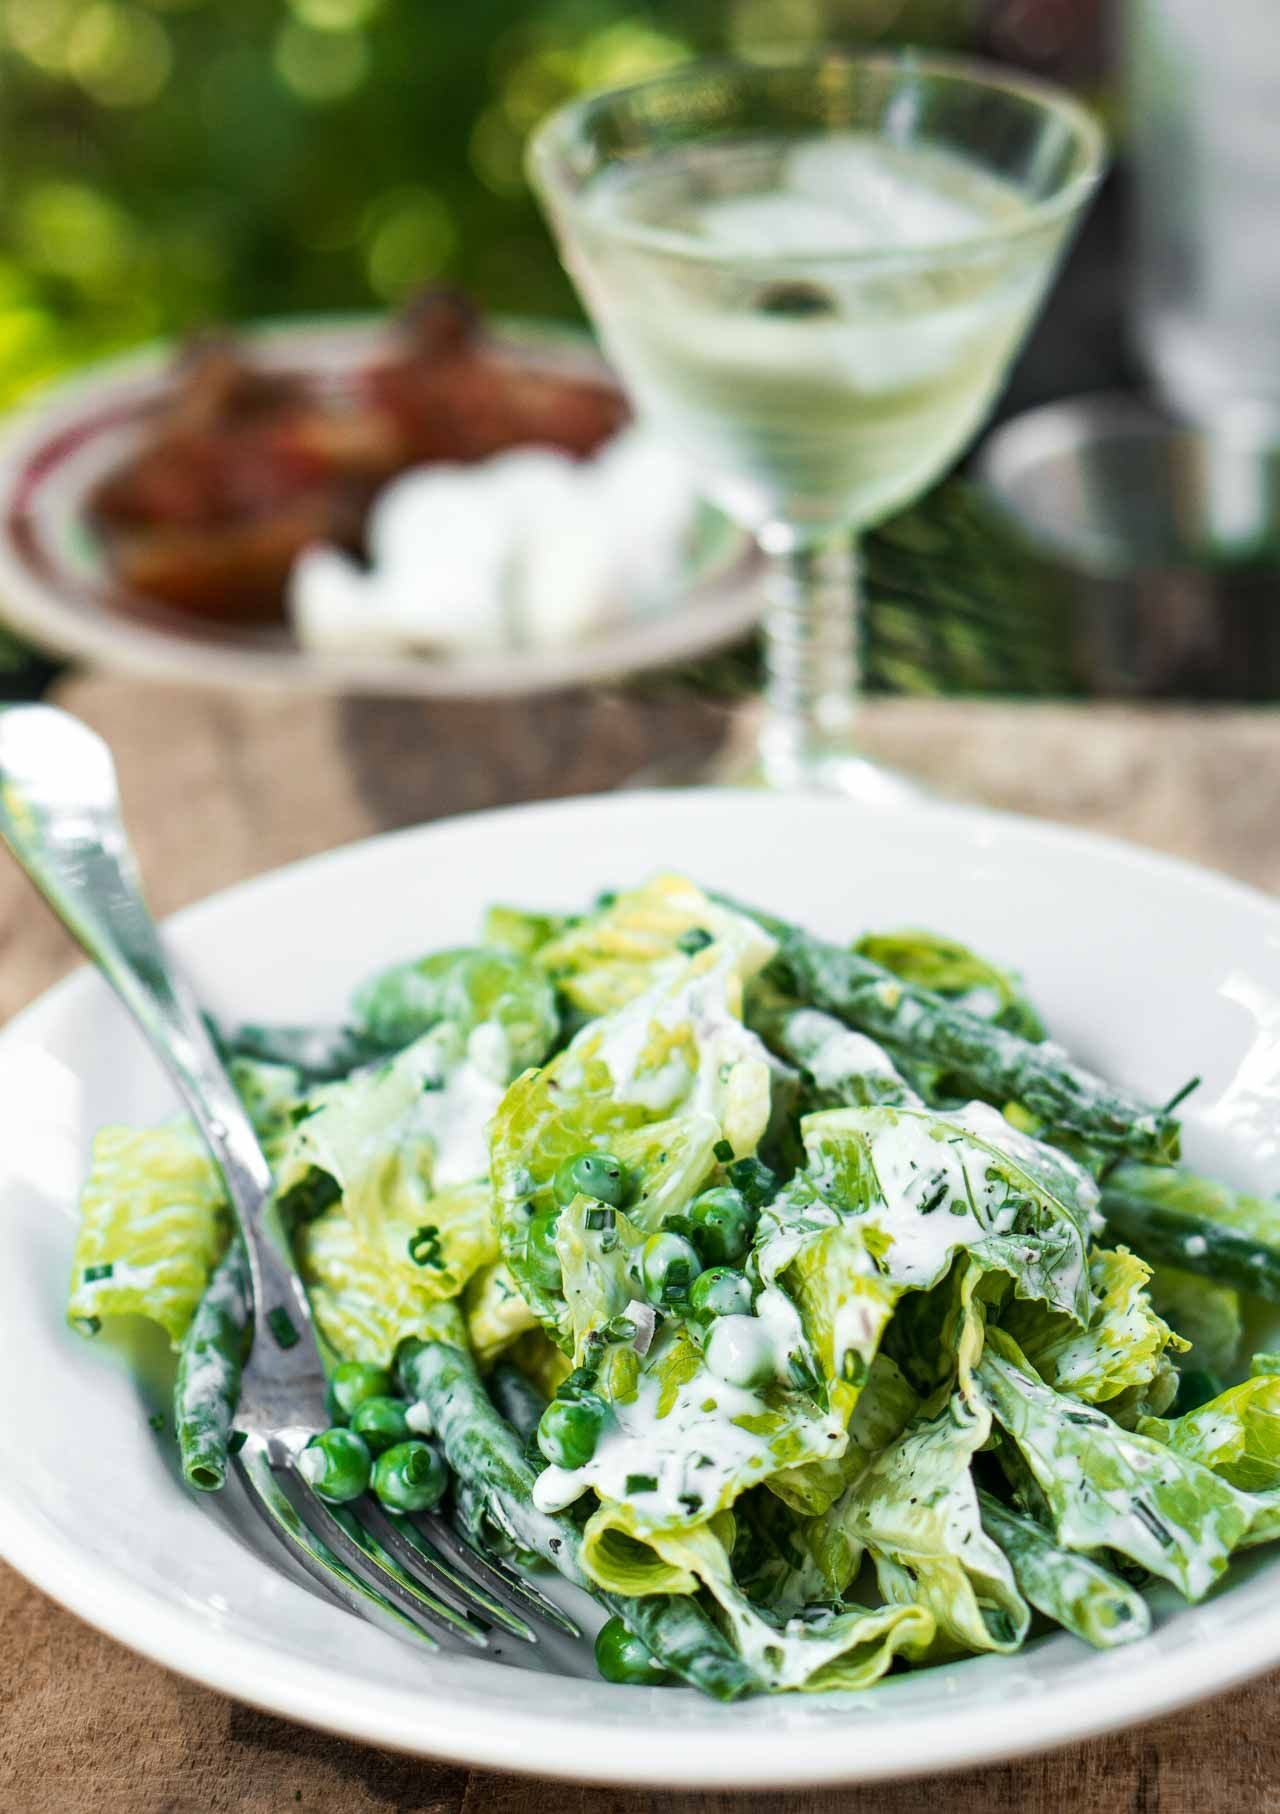 Green Salad With Peas Green Beans And Buttermilk Ranch Dressing Recipe Buttermilk Ranch Dressing Green Beans Food Recipes